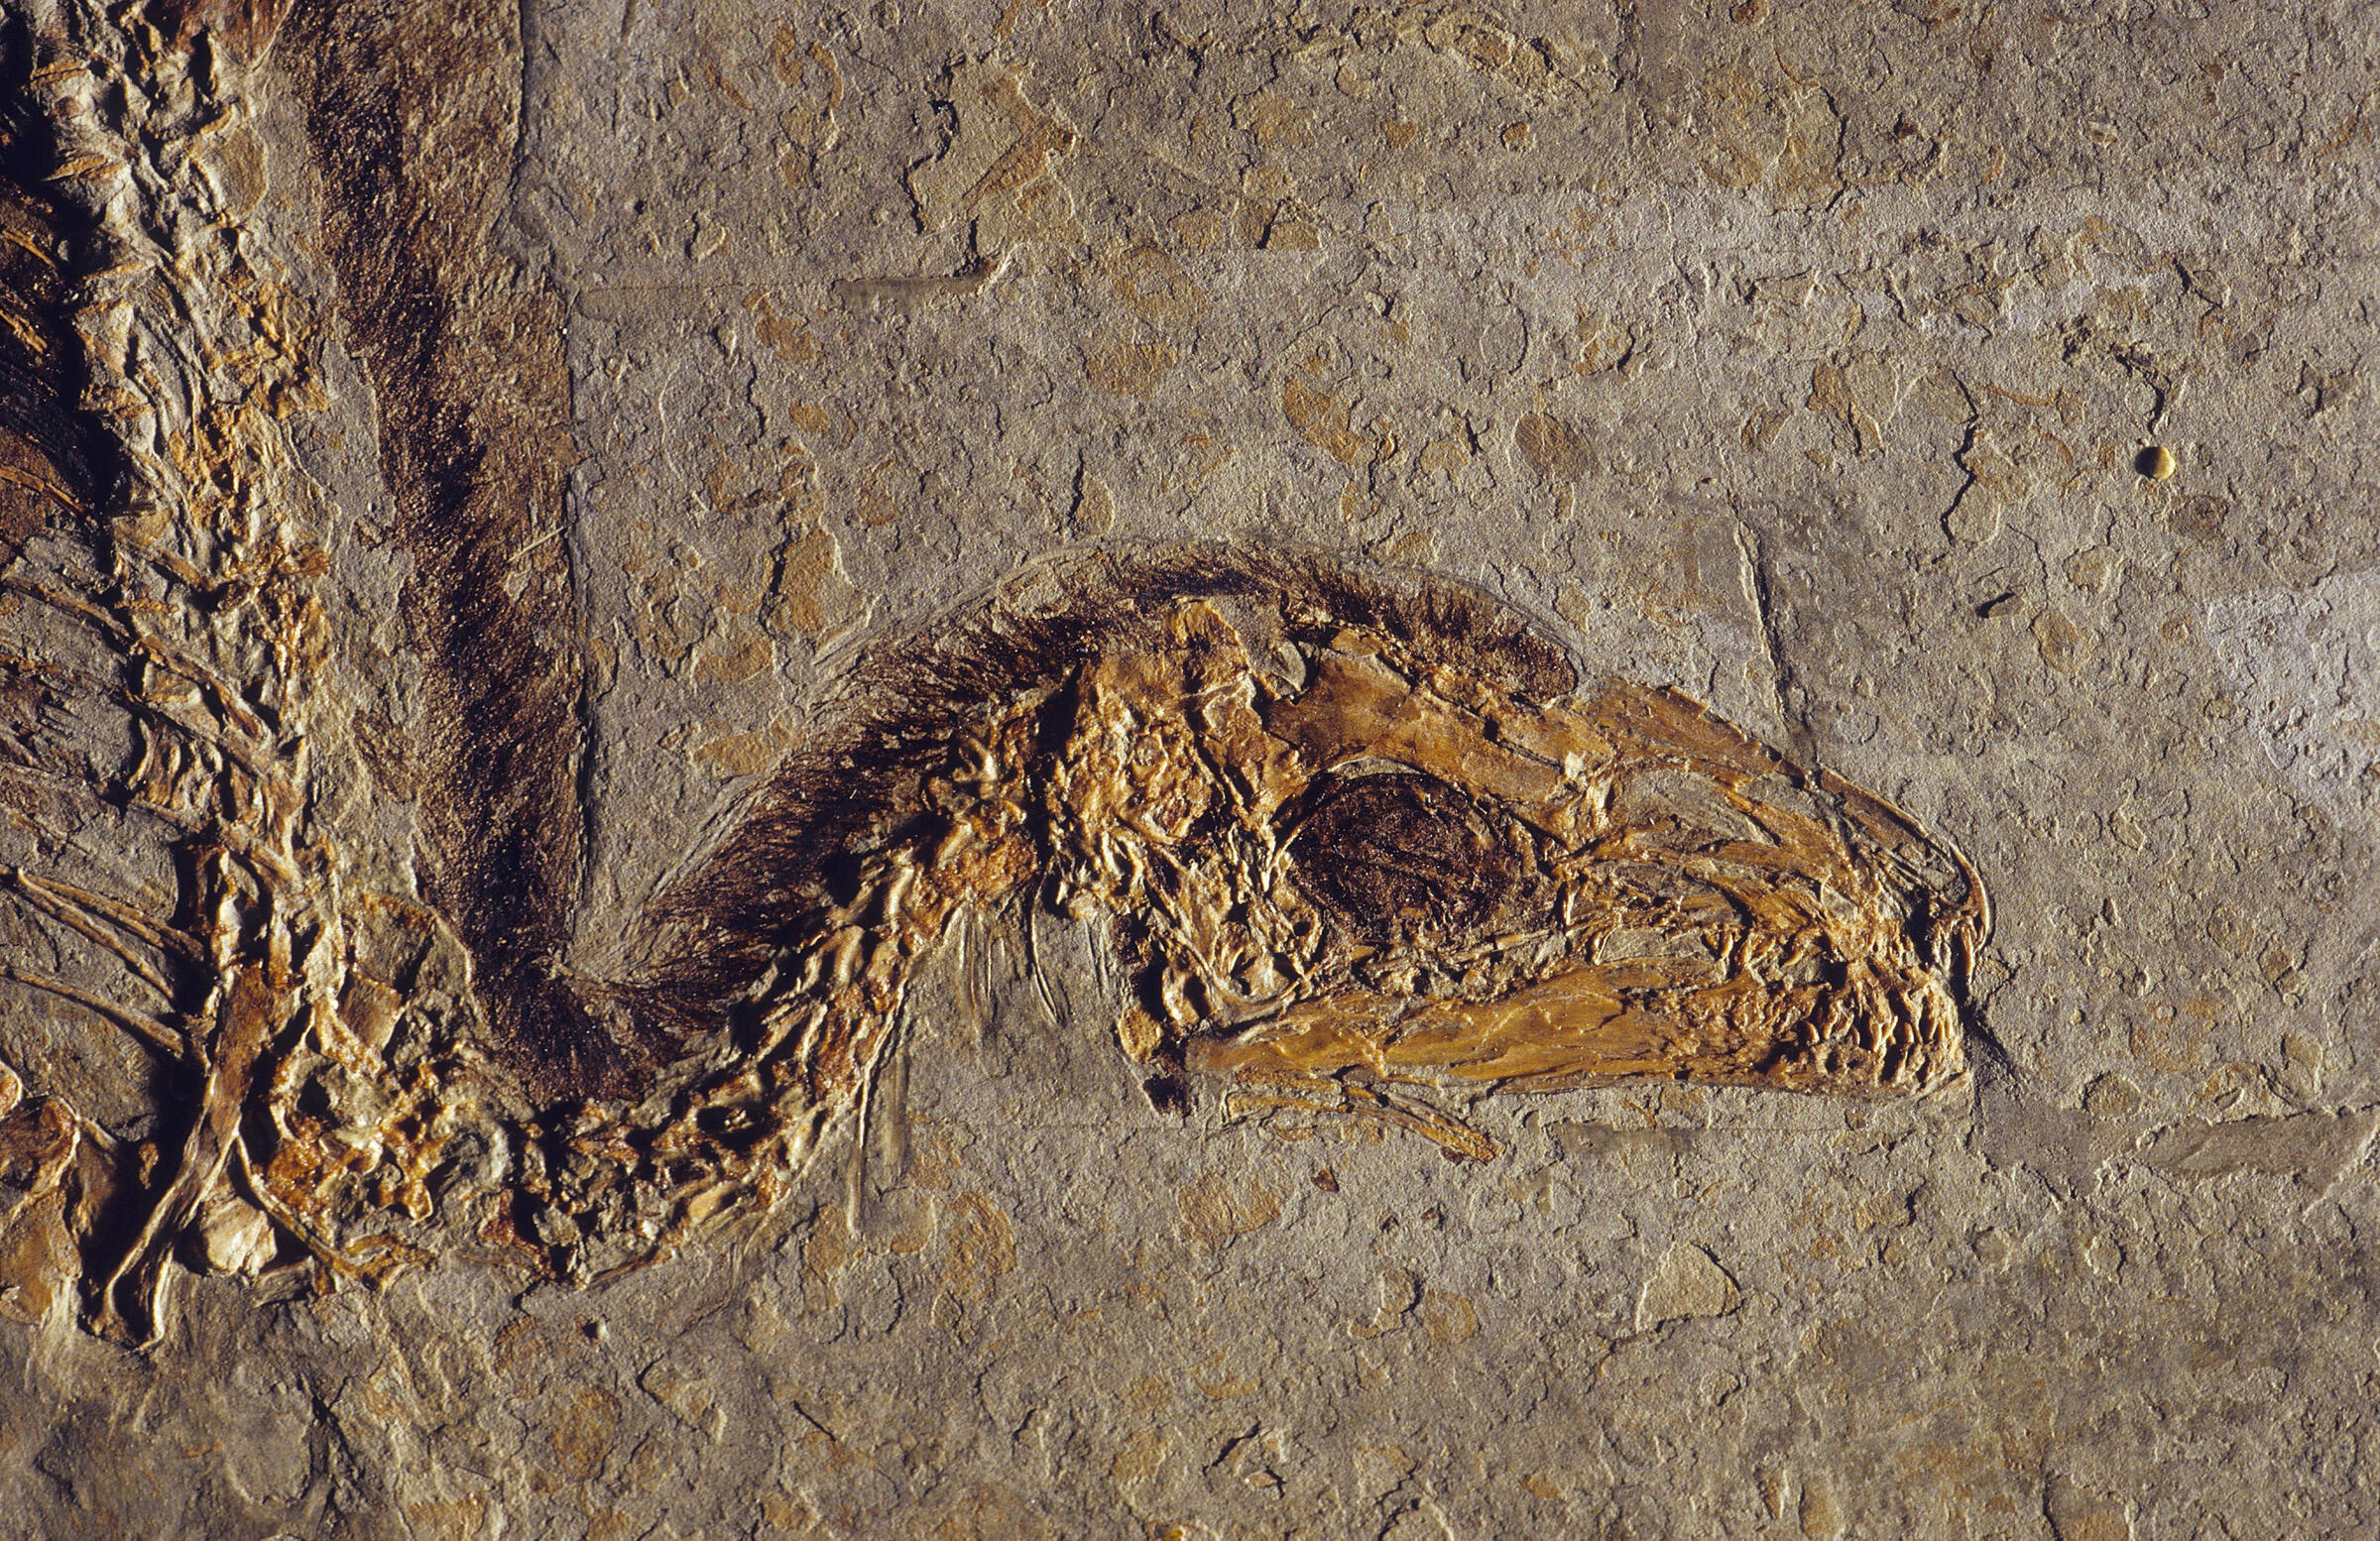 1996, Sinosauropteryx: Another find from China's fossil treasure troves, this carnivore was the first non-avian dinosaur discovered to have feathers, although they were simple and hair-like. Thomas Ernsting/laif/Redux